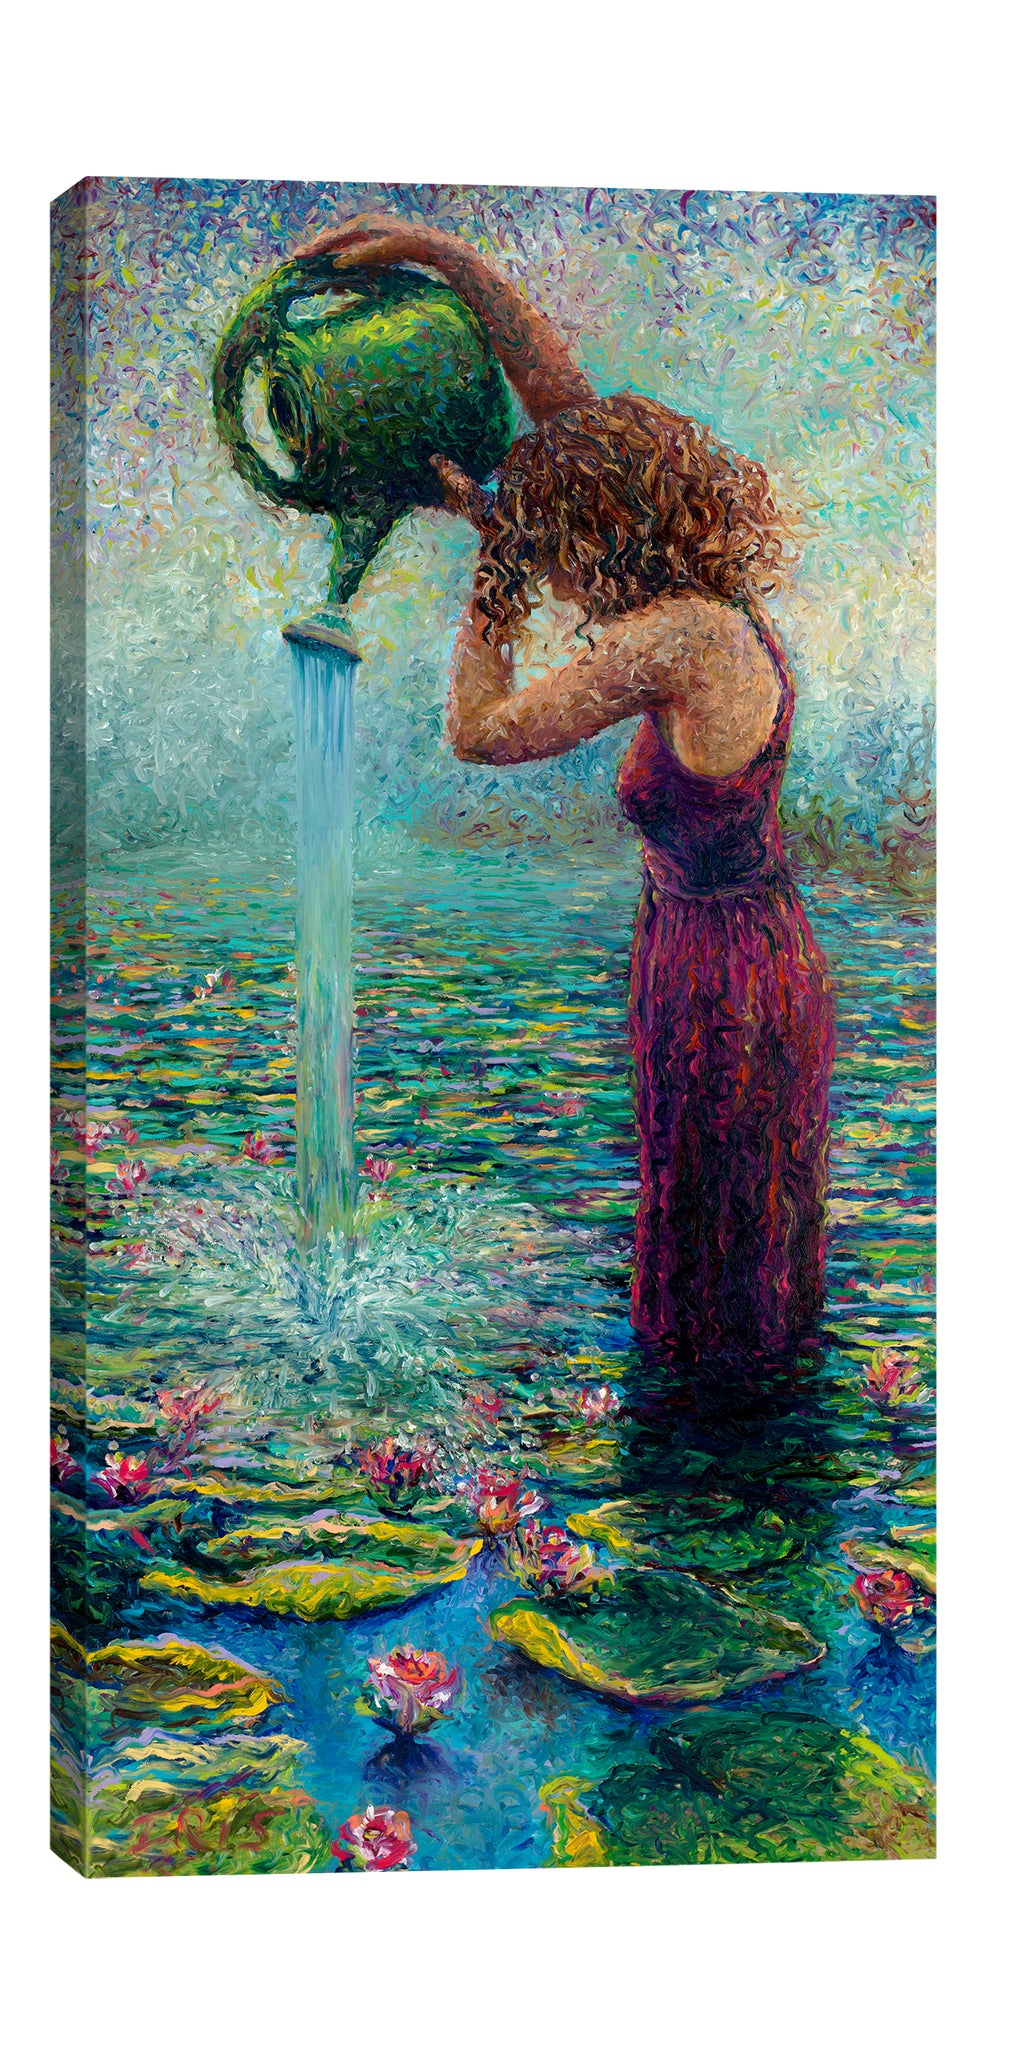 Iris-Scott,Modern & Contemporary,People,flowers,florals,leaves,lily pads,woman,dresses,women,lady,water lilies,water lily,